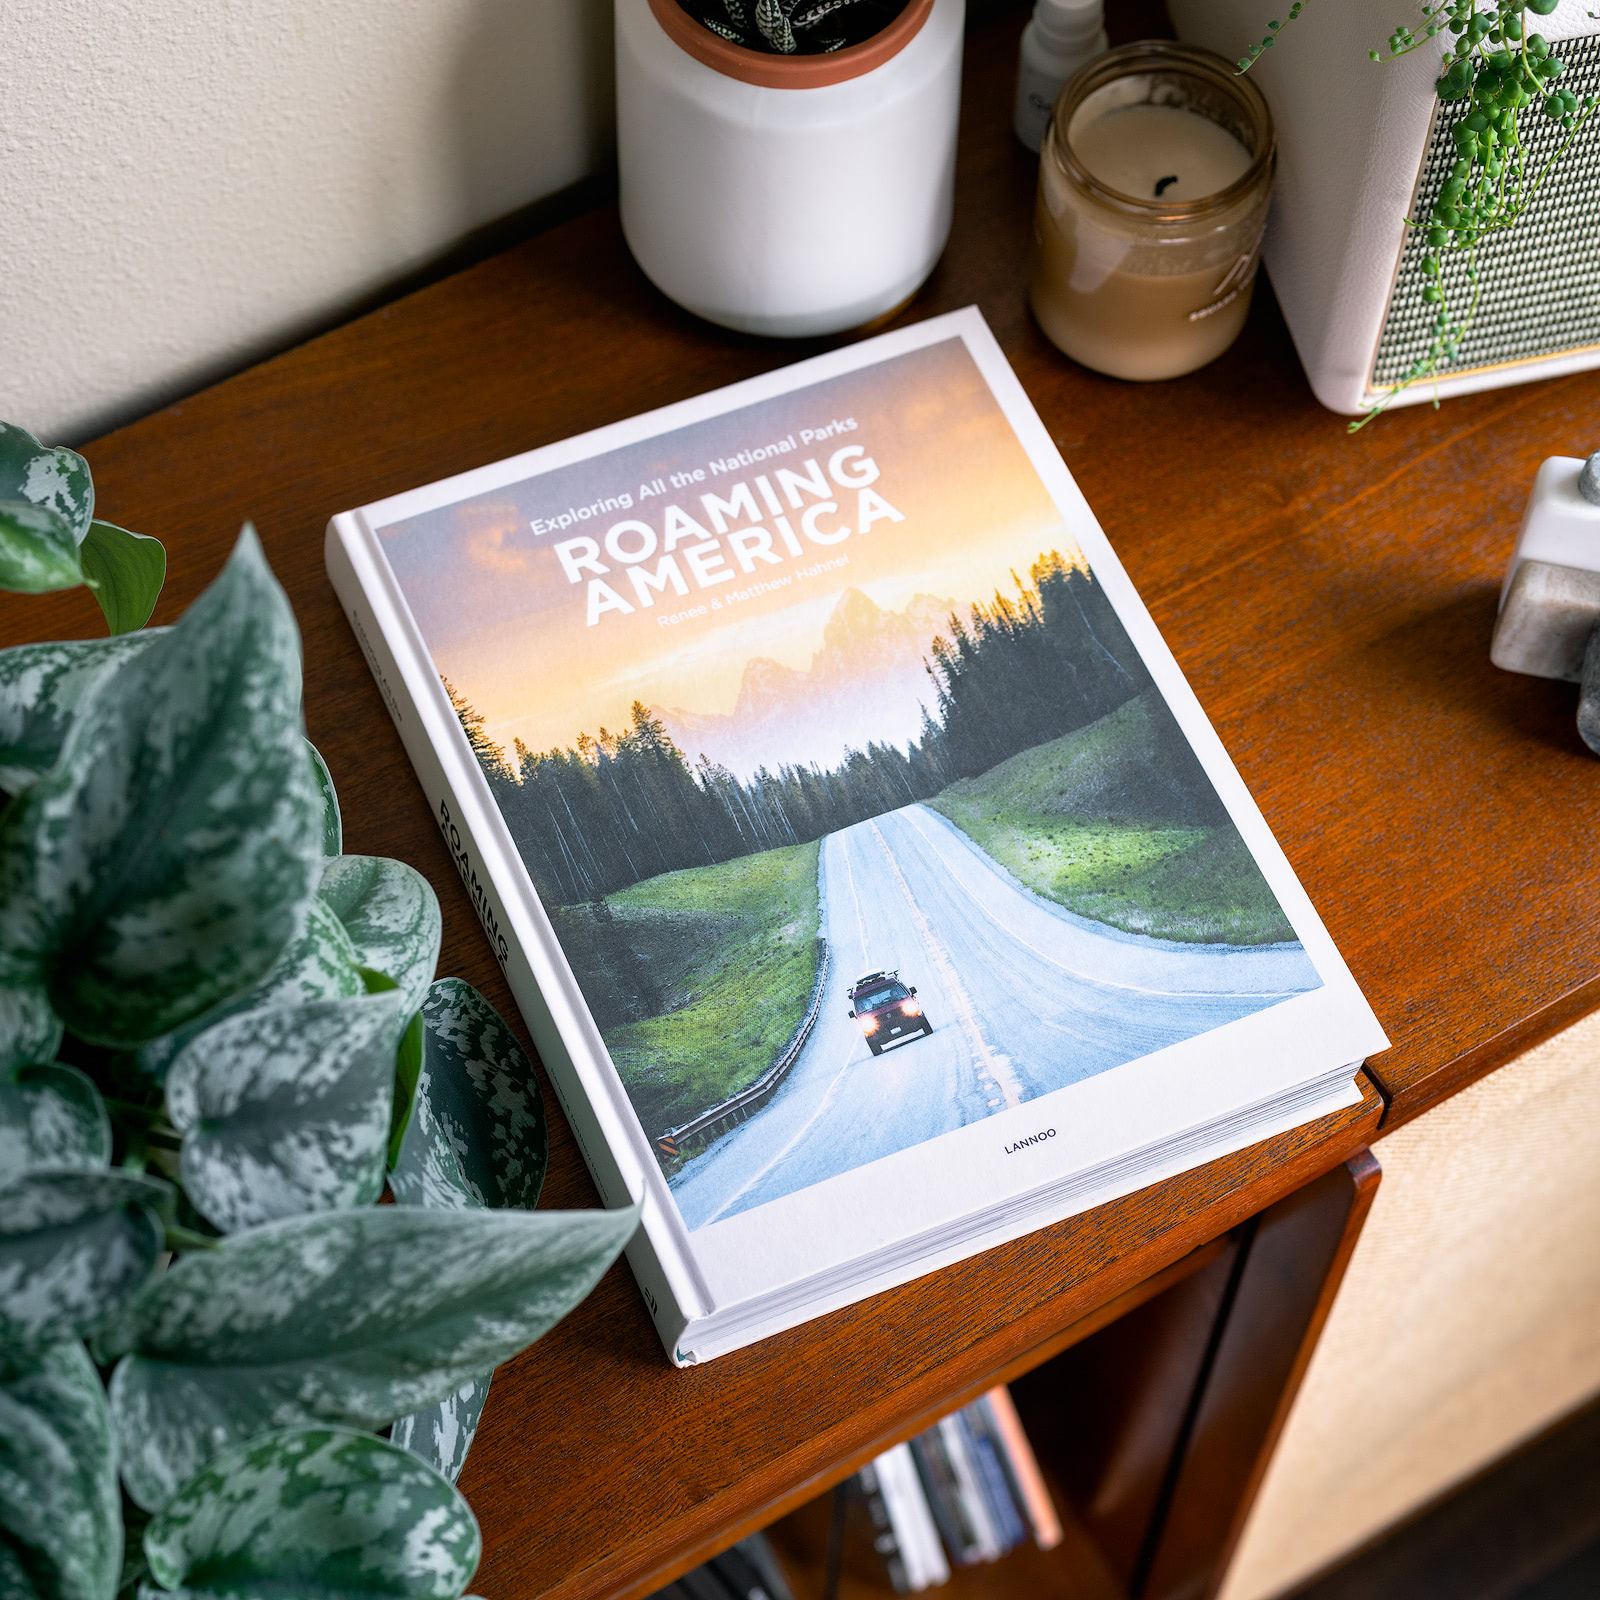 Roaming America Book - Exploring All The National Parks